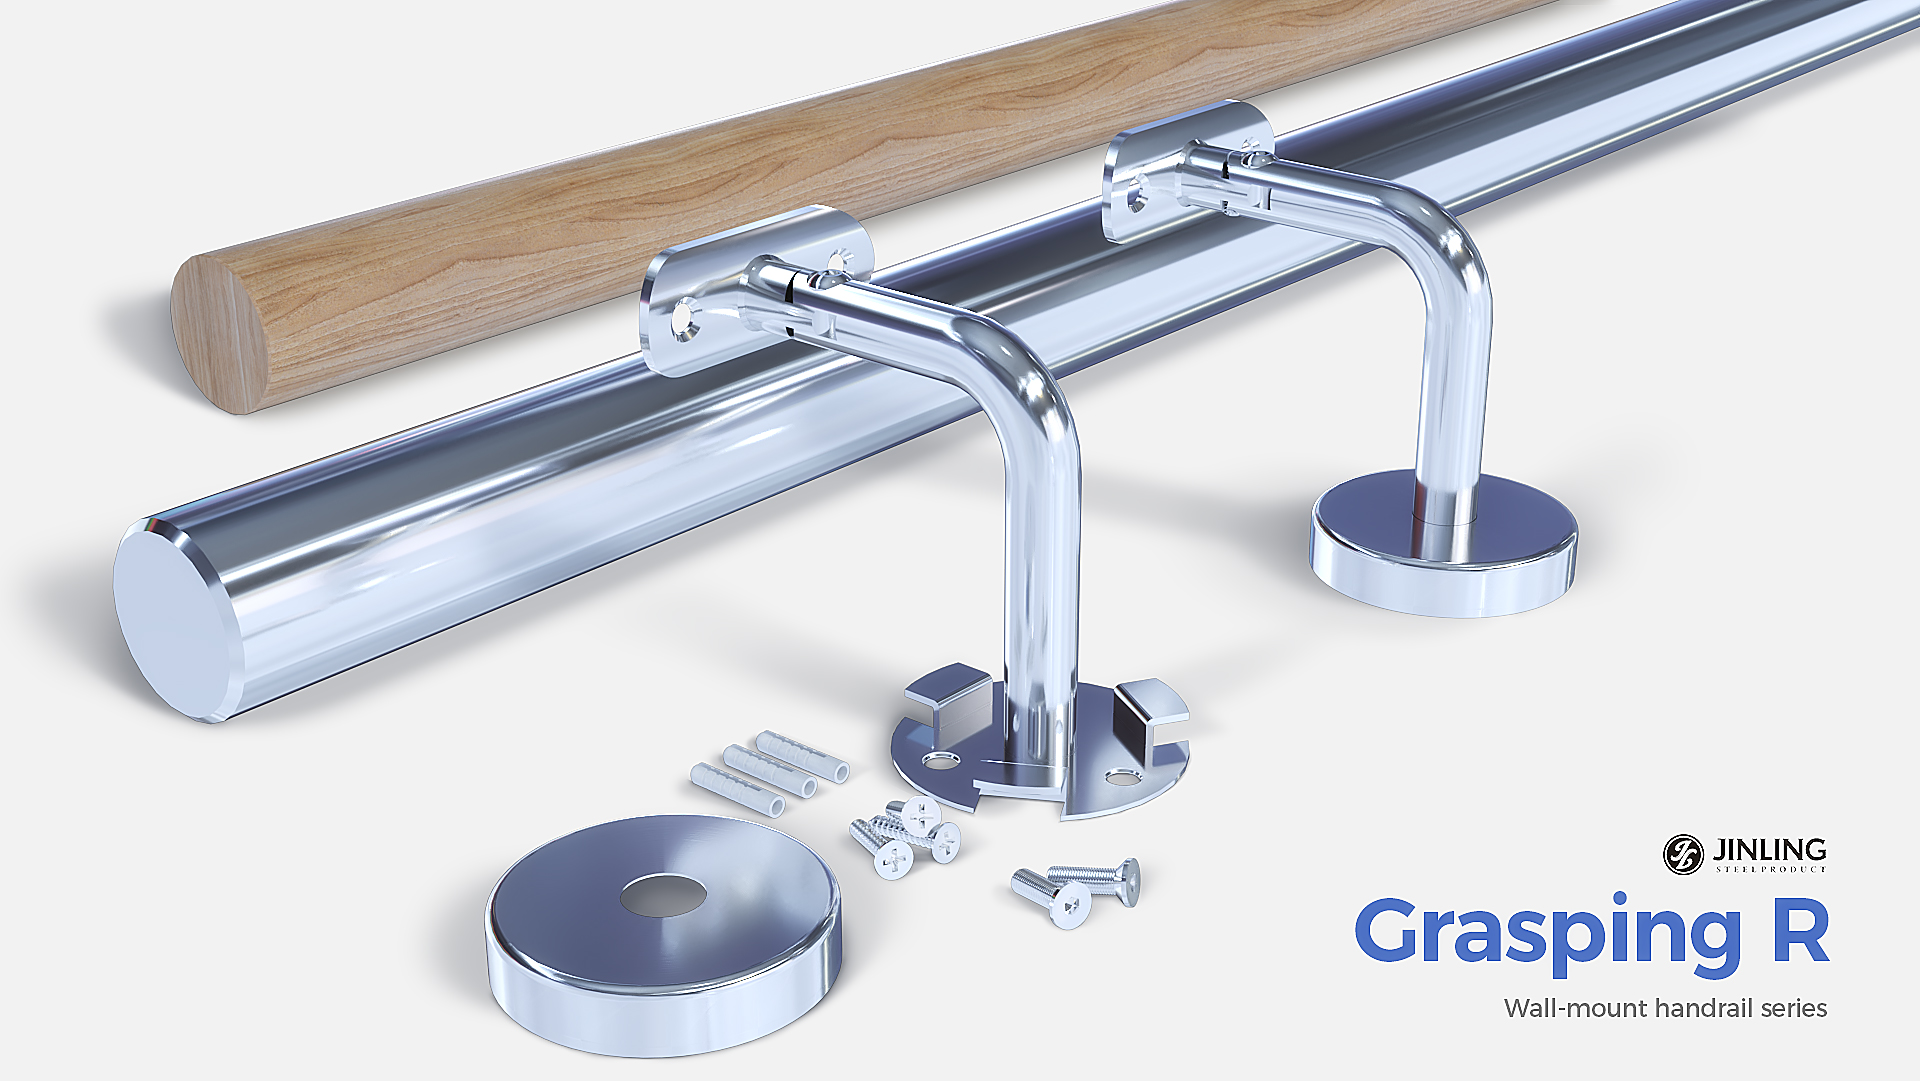 Grasping R |  Round Handrail